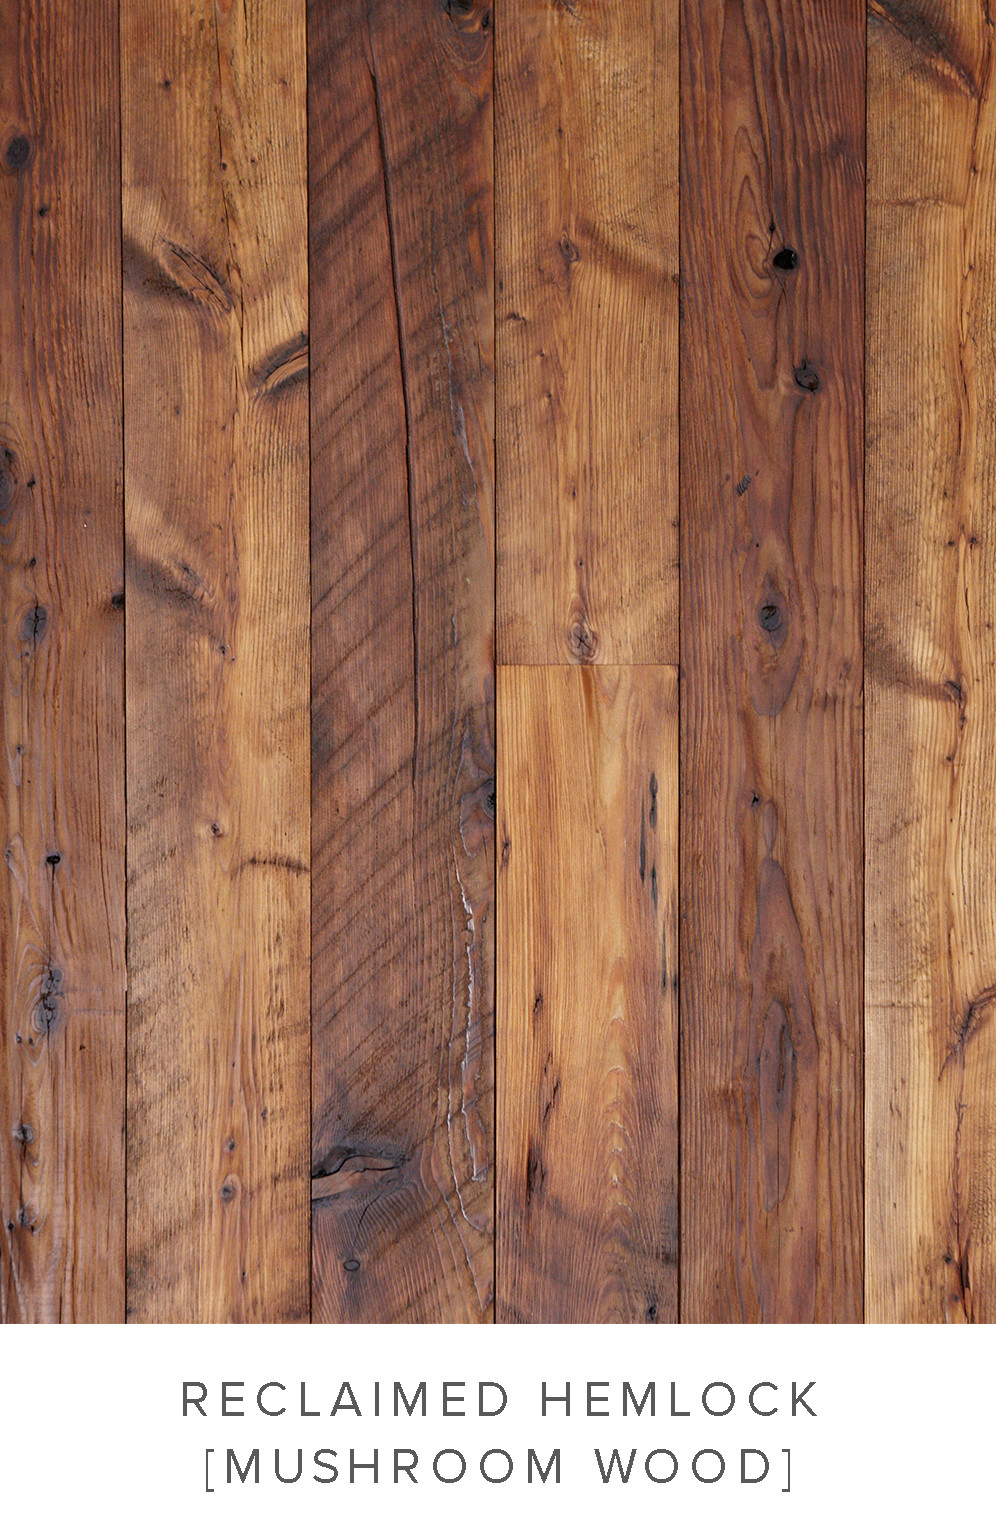 17 attractive How to Stain Hardwood Floors Video 2021 free download how to stain hardwood floors video of extensive range of reclaimed wood flooring all under one roof at the pertaining to reclaimed hemlock mushroom wood